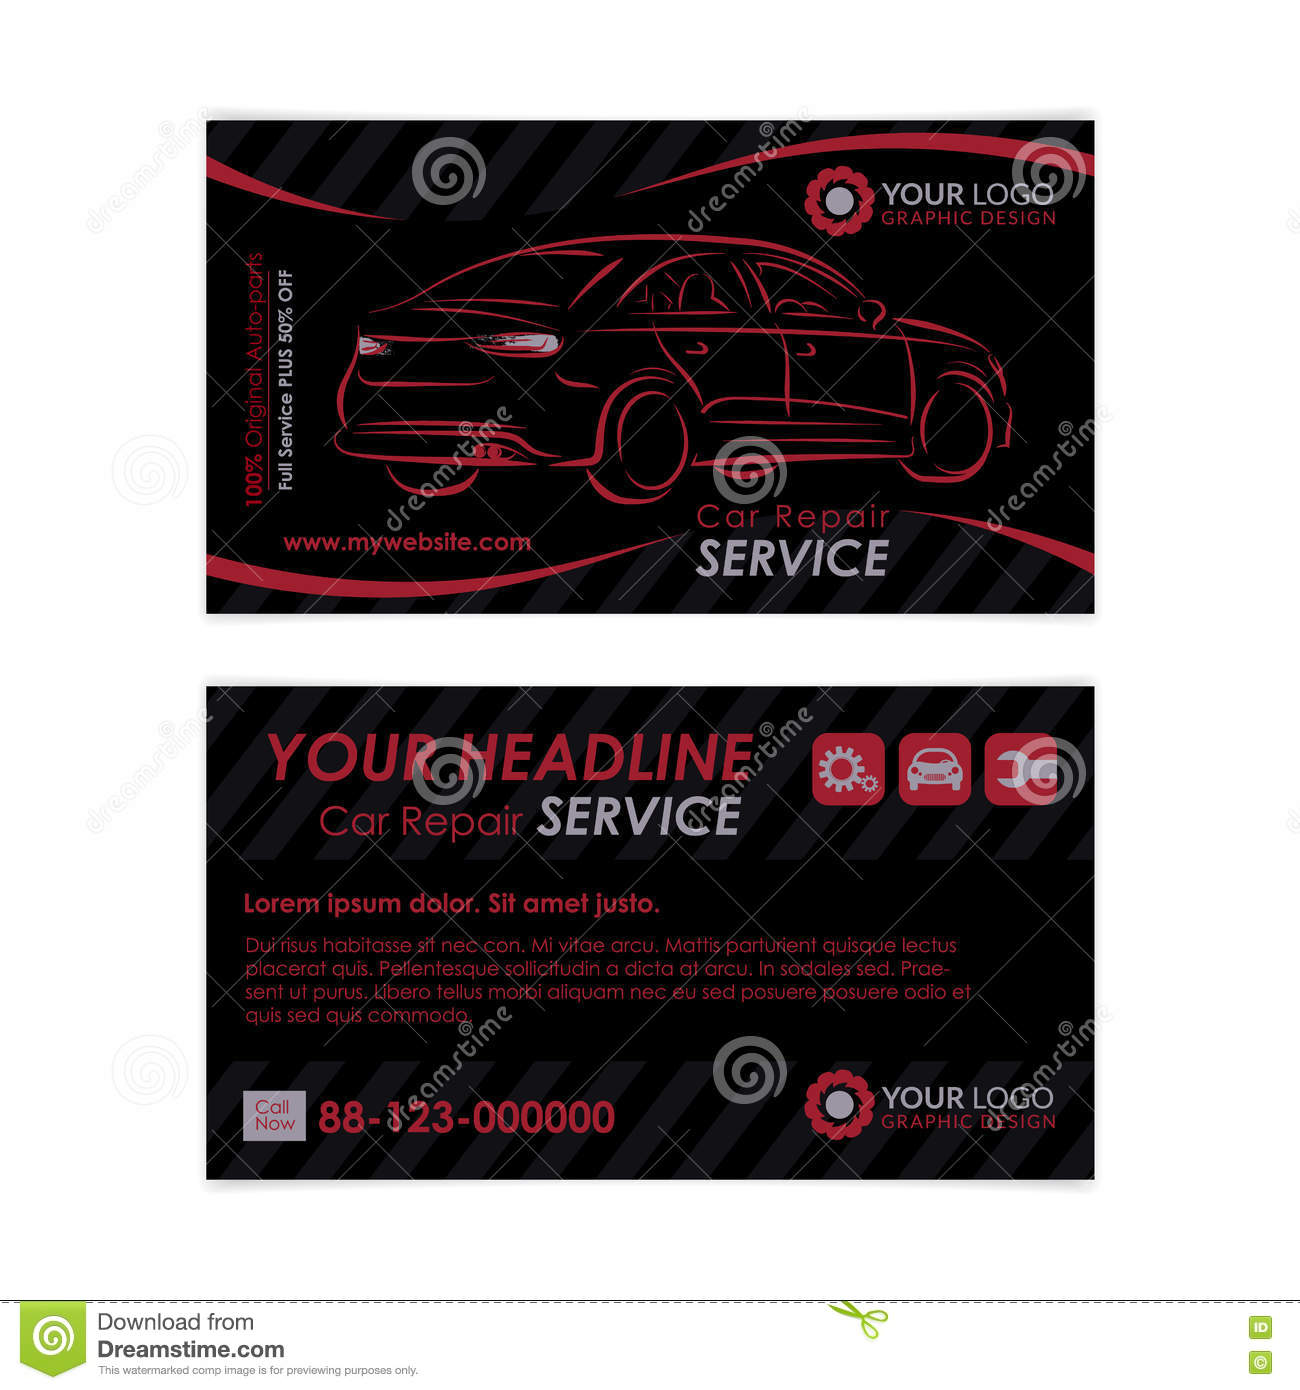 Auto repair business card template create your own business cards auto repair business card template create your own business cards fbccfo Image collections